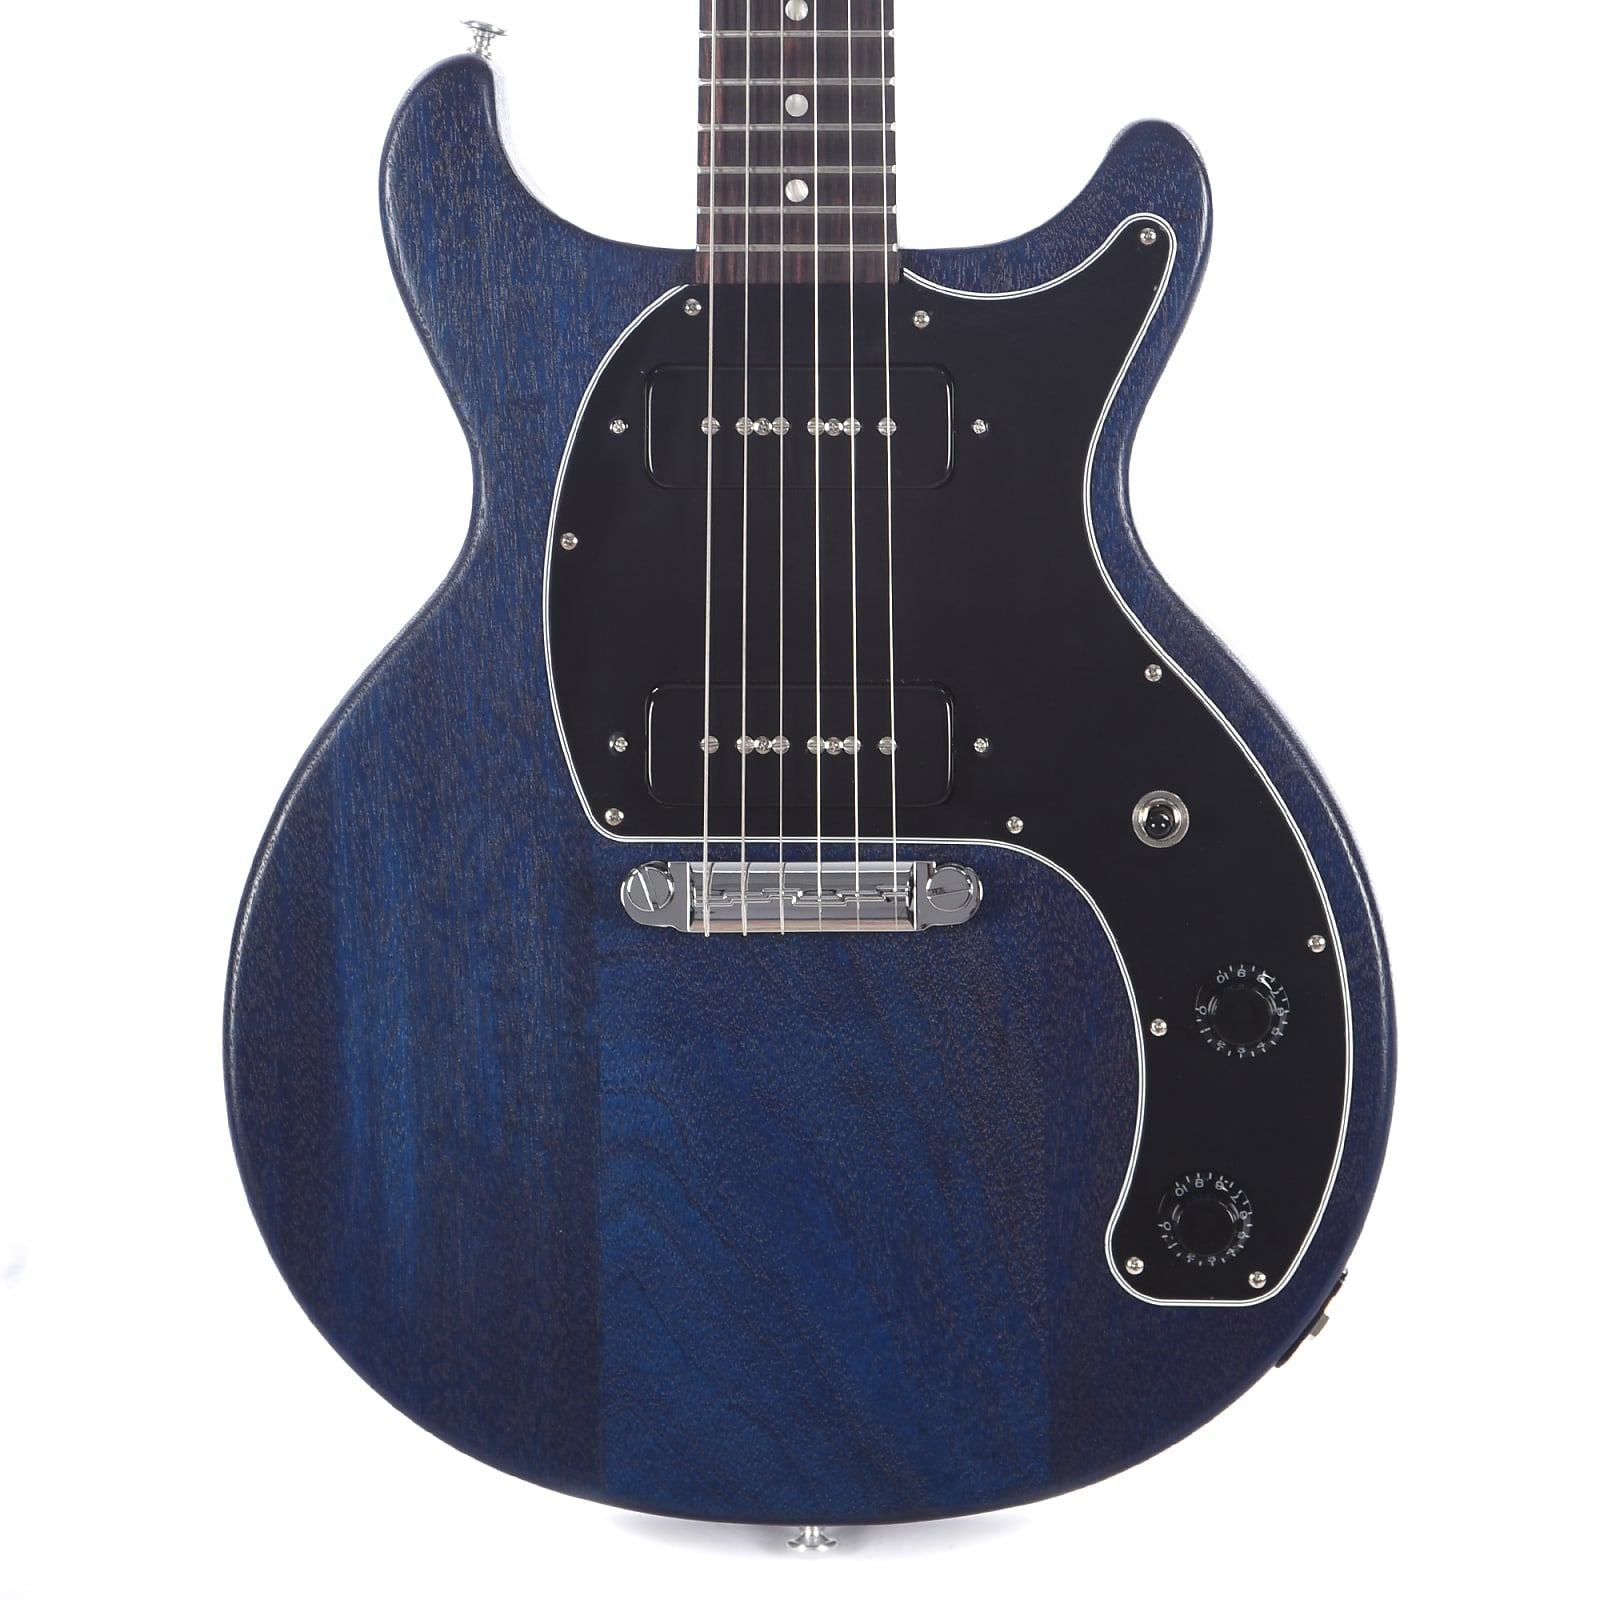 Gibson Les Paul Special Tribute DC Blue Stain LPSDT00B2CH1 Indonesia 2019 Gibson - HIENDGUITAR.COM